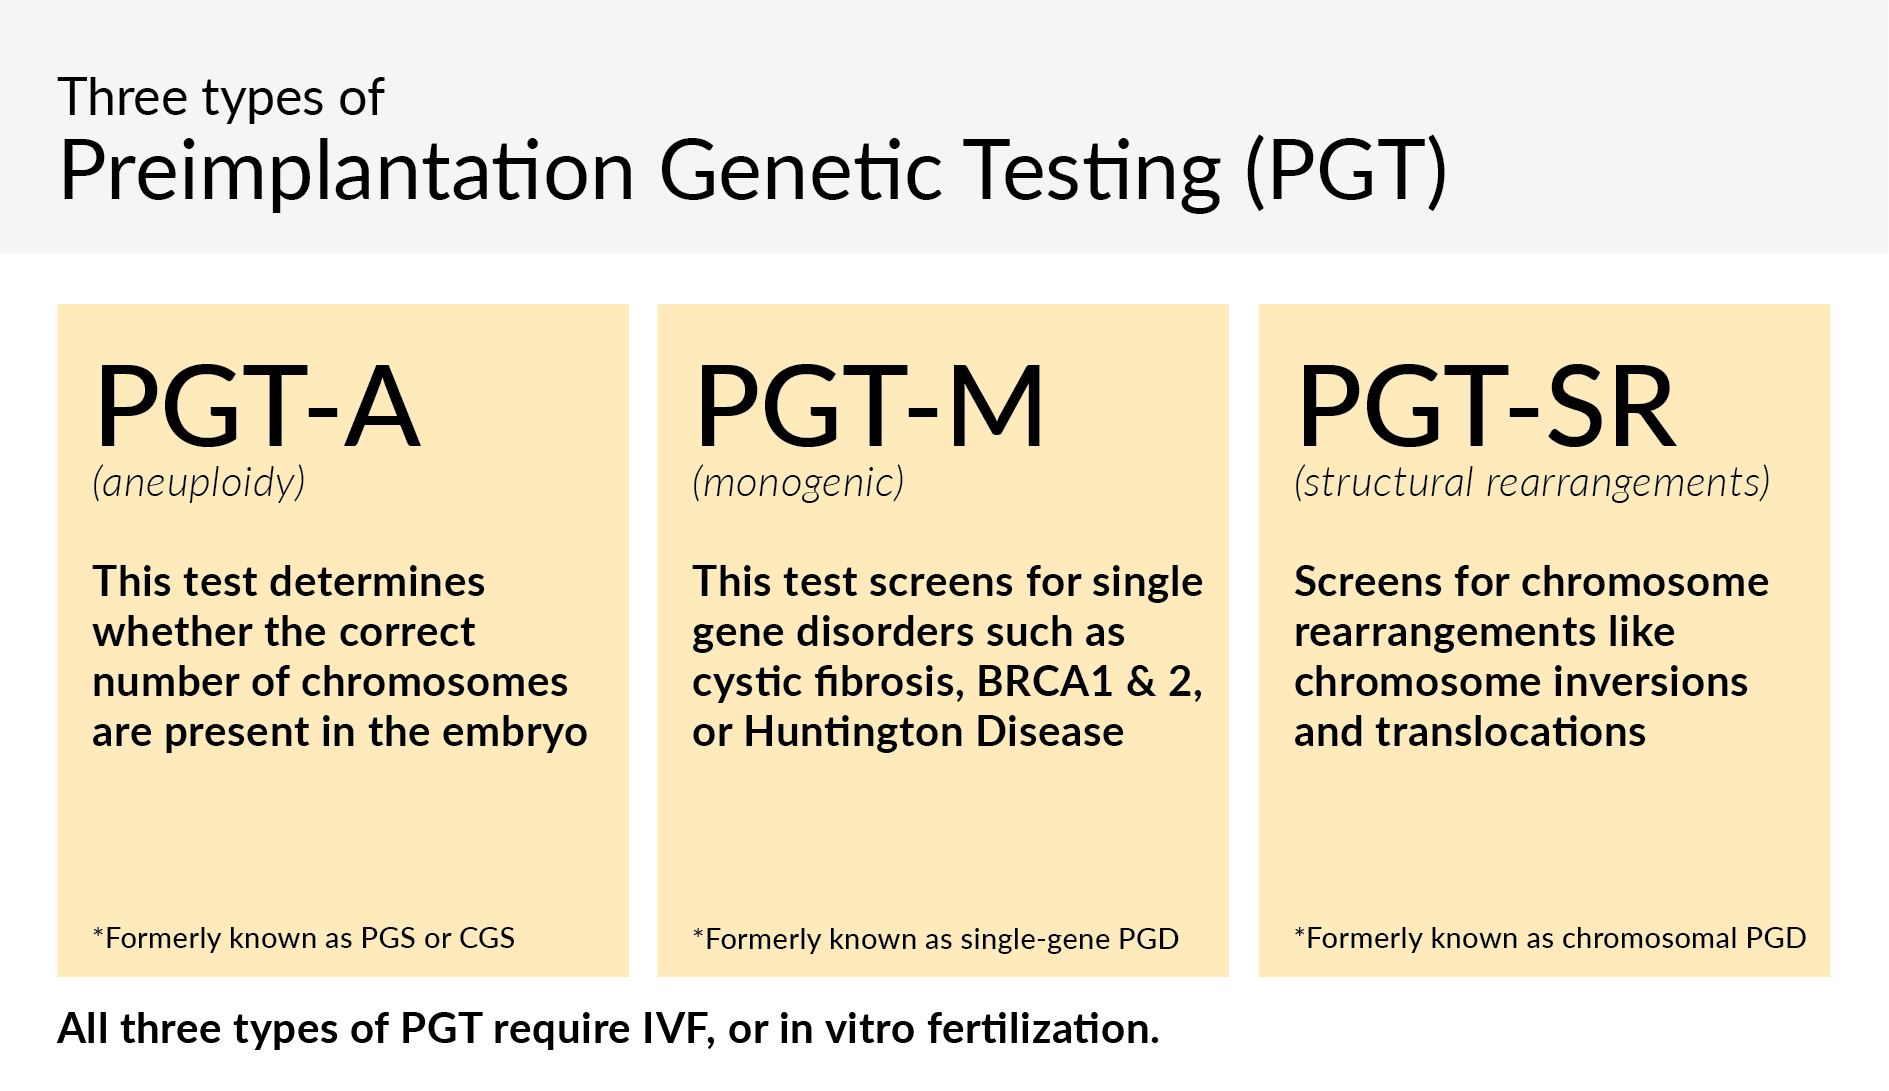 PGT-A (aneuploidy) This test determines whether the correct number of chromosomes are present in the embryo; PGT-M (monogenic) This test screens for single gene disorders such as cystic fibrosis, BRCA1 & 2, or Huntington Disease; PGT-SR (structural rearrangements) Screens for chromosome rearrangements like chromosome inversions and translocations. All three types of PGT require IVF, or in vitro fertilization.